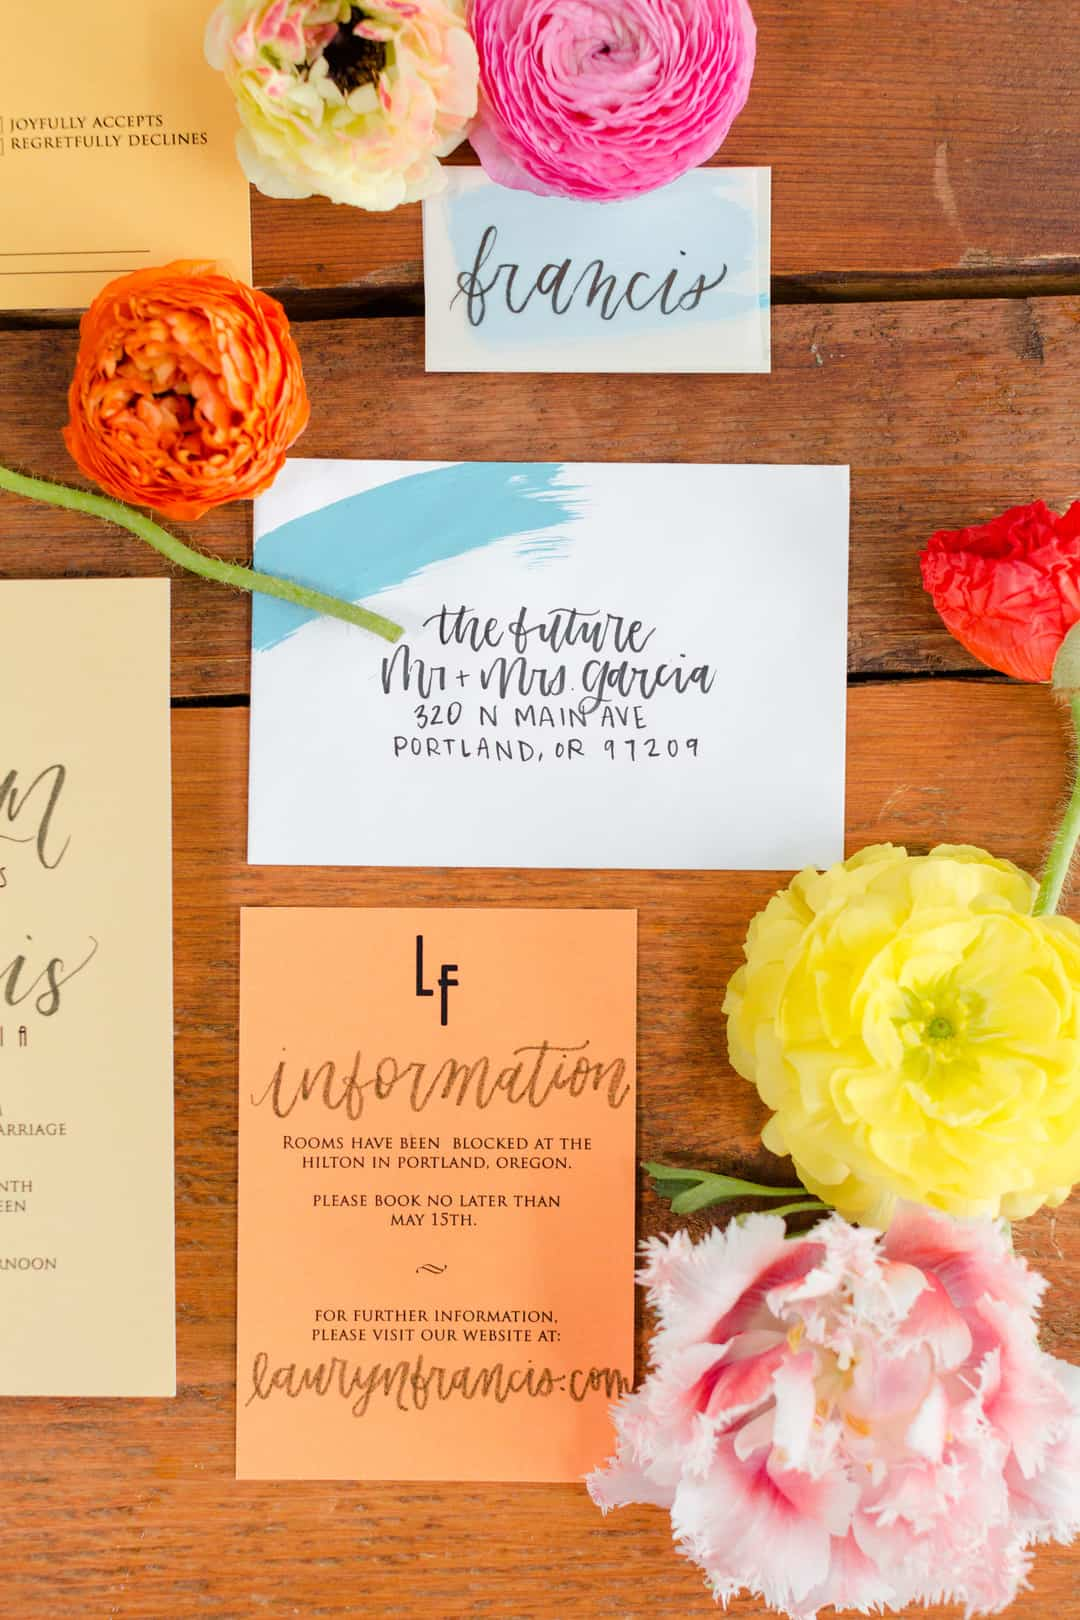 BRIGHT COLORFUL WEDDING IDEAS